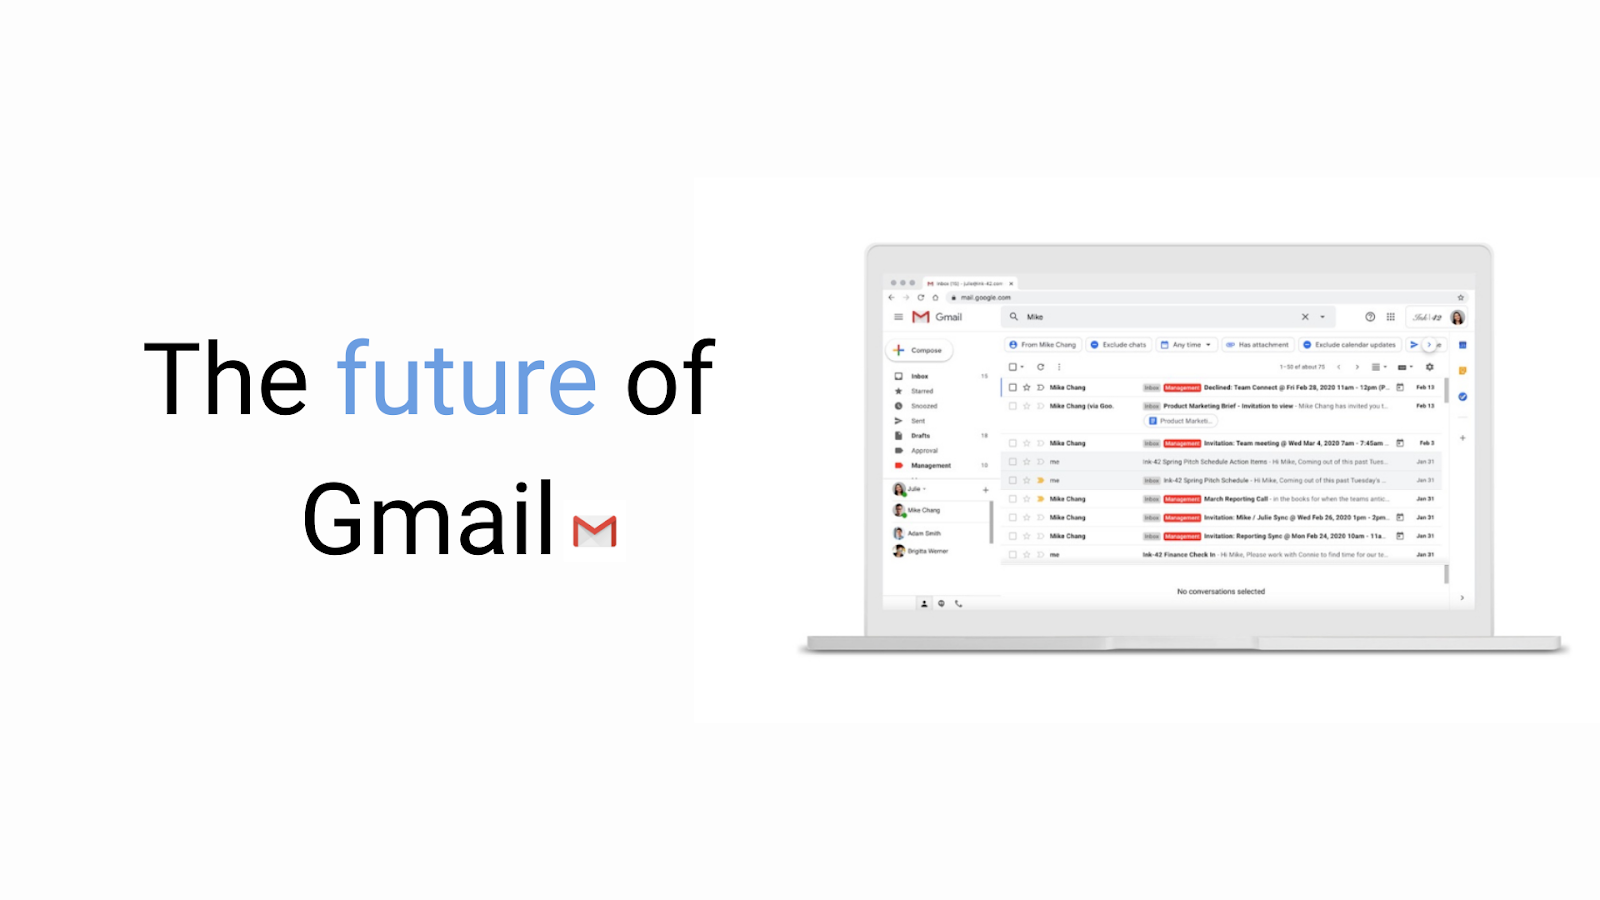 The future of Gmail